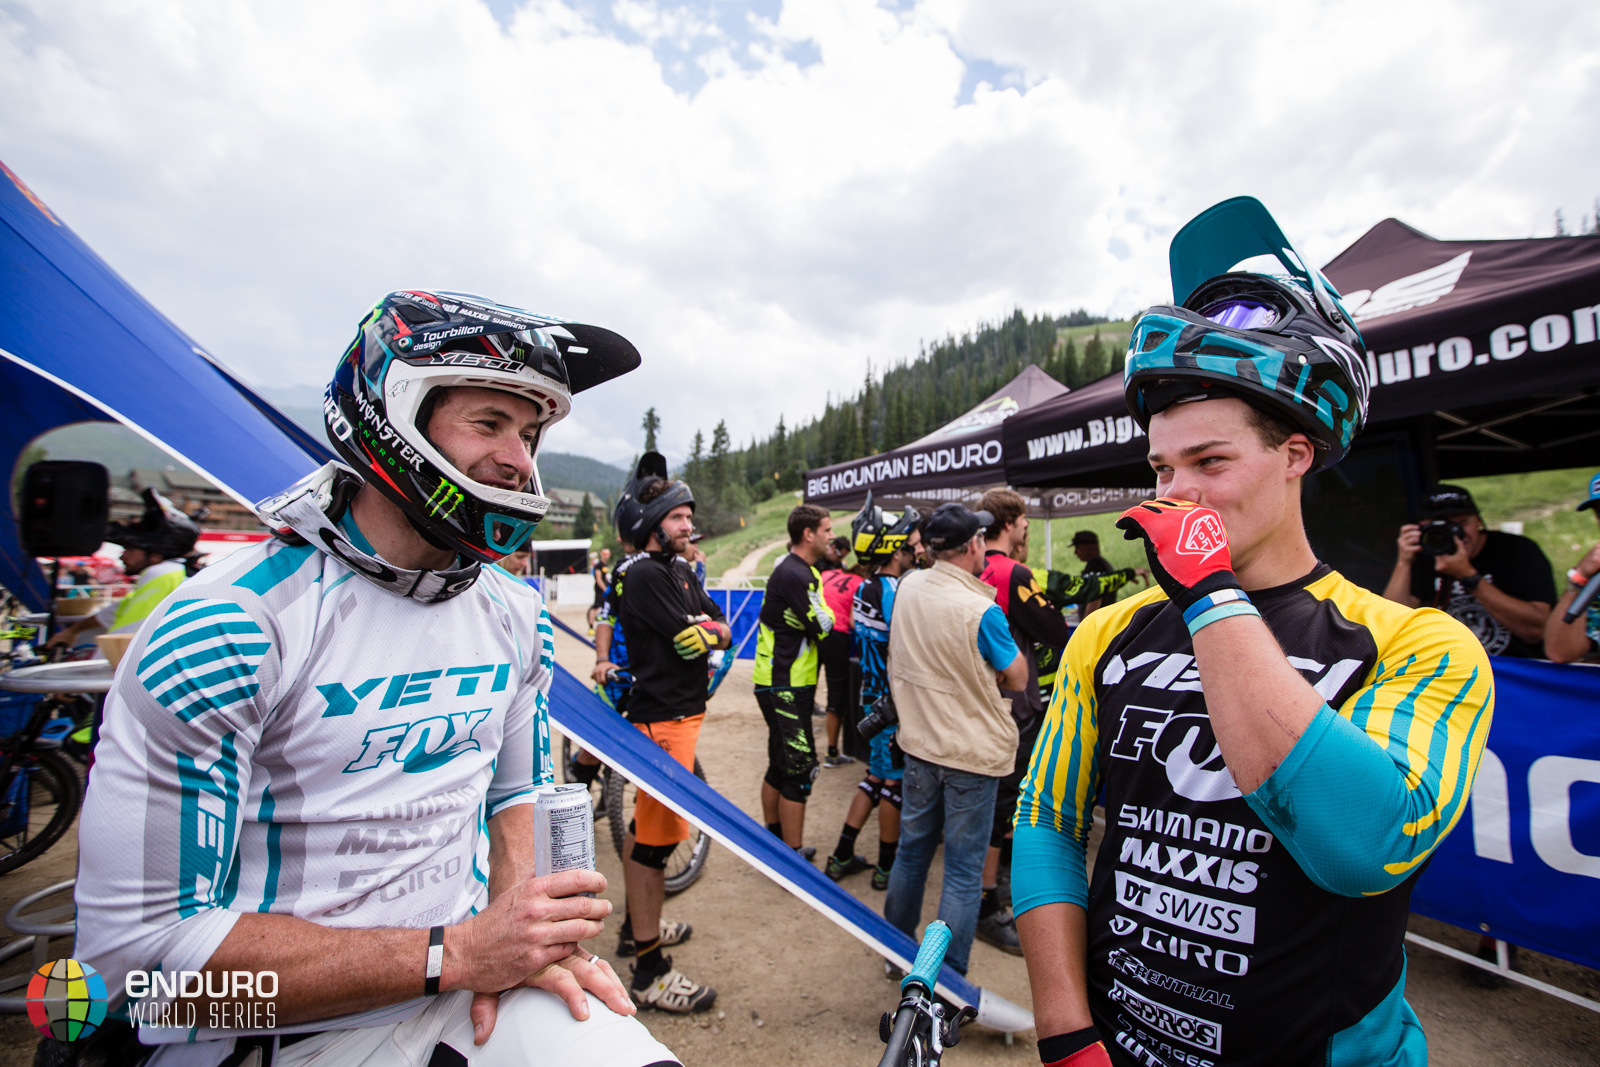 Jared Graves and Richie Rude swap stories from the race. EWS 5 2014 Winter Park. Photo by Matt Wragg